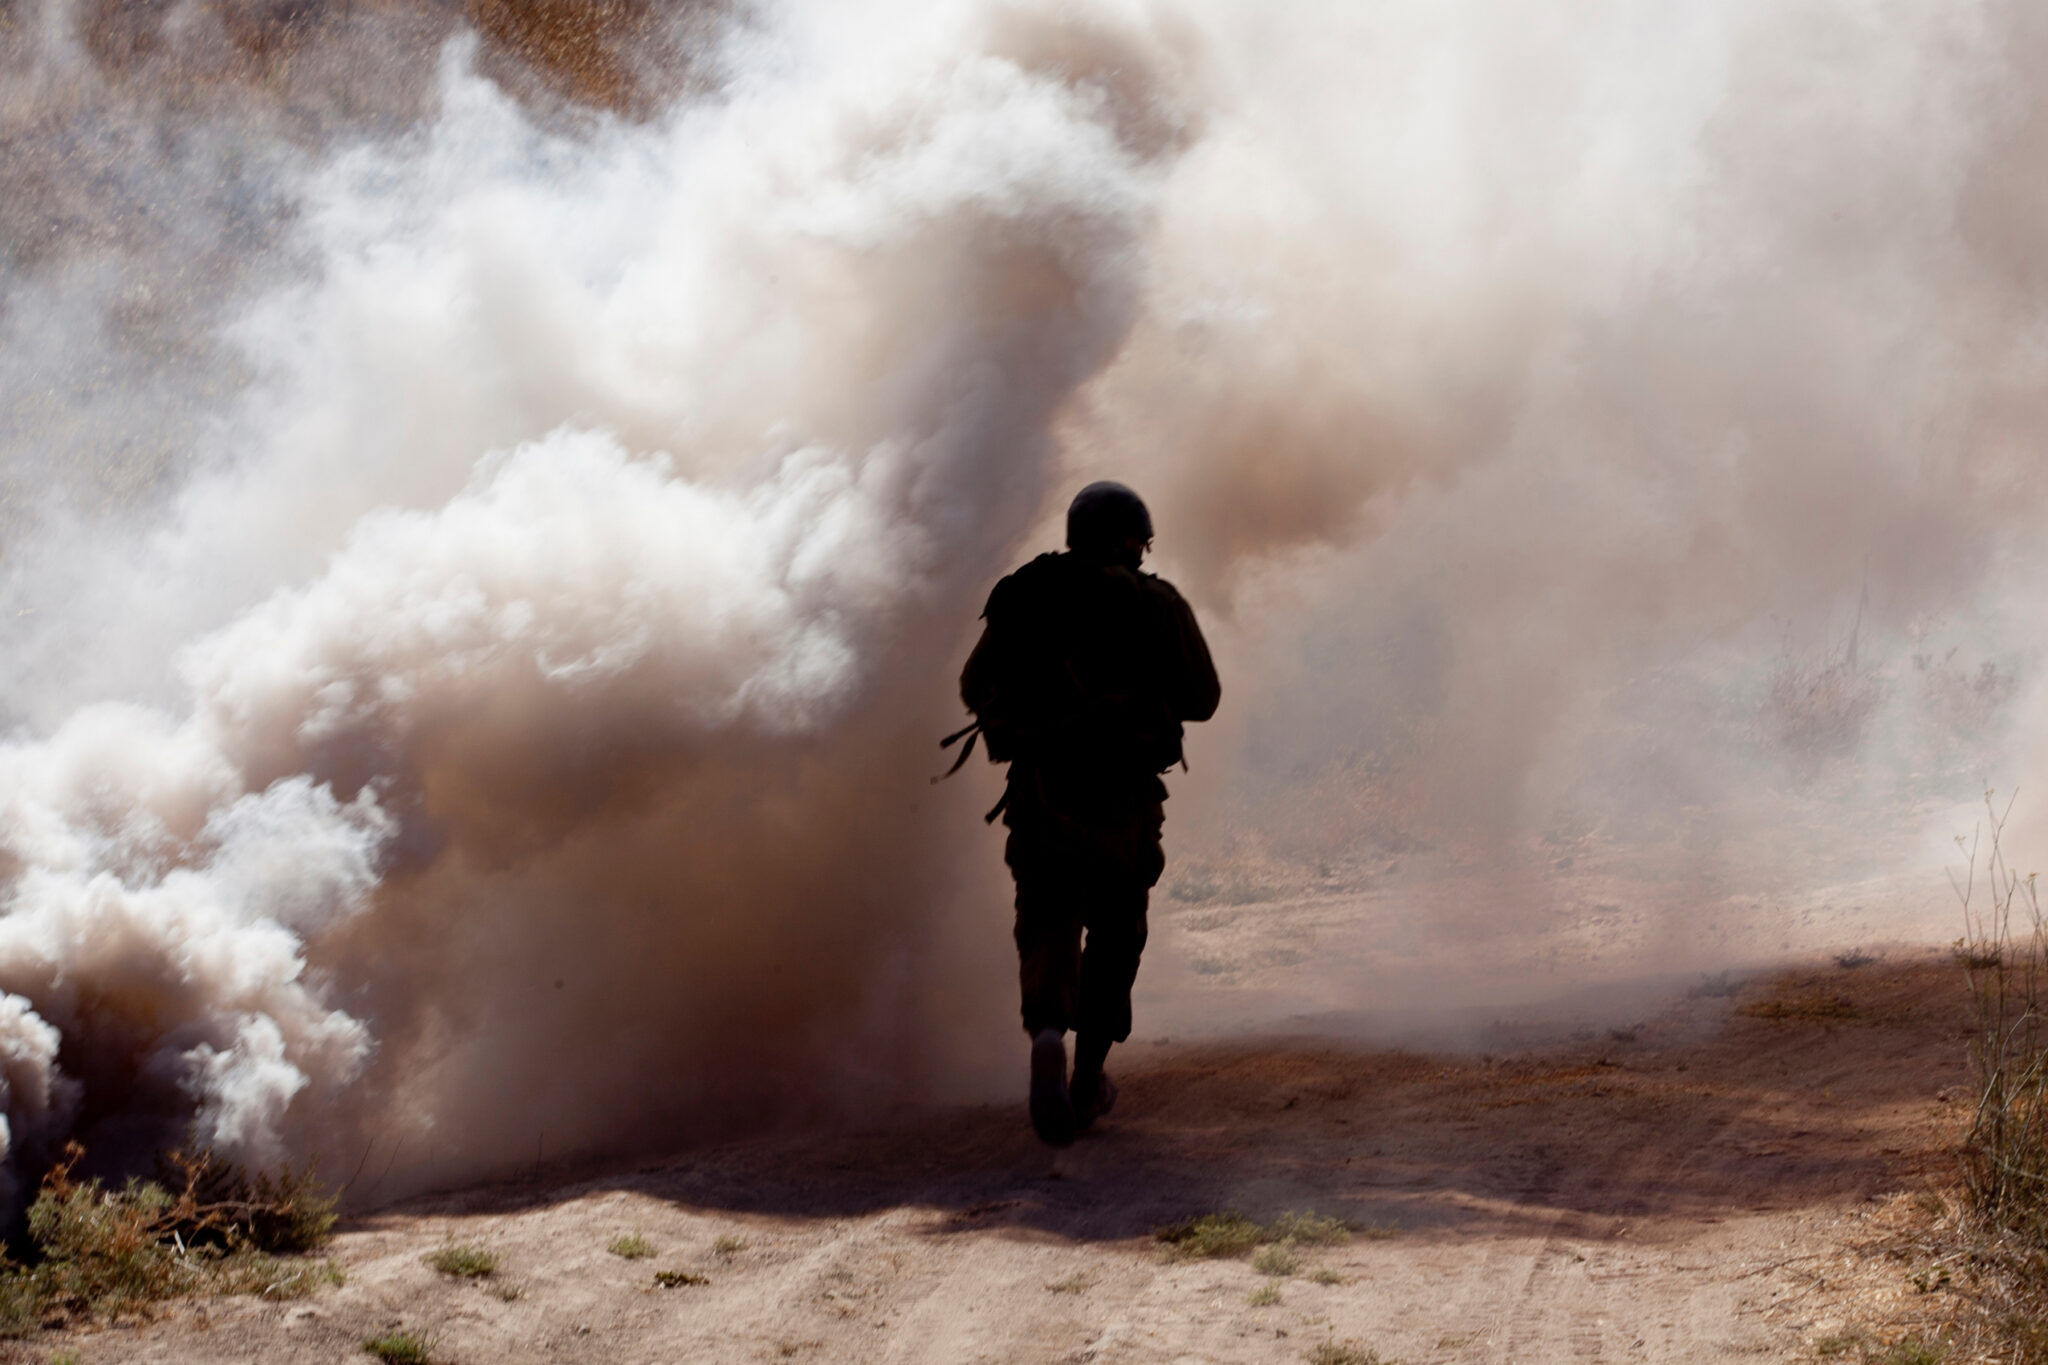 Rear View Of Soldier running through smoke and smog that may contain asbestos.